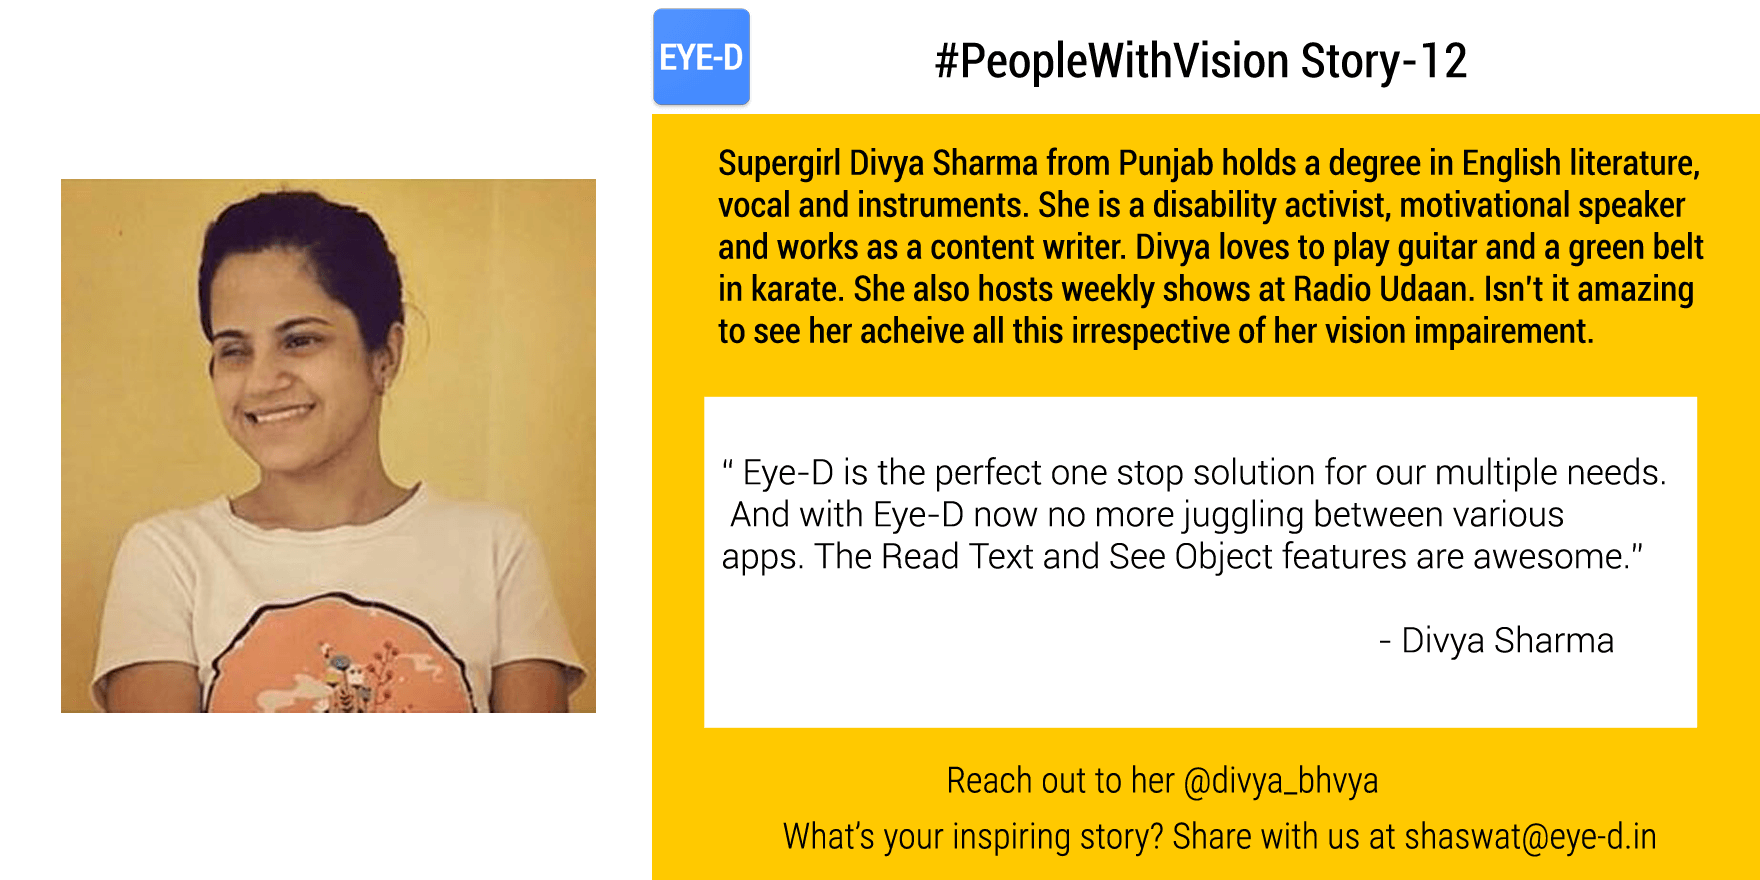 Divya, the motivational speaker, content writer, disability activist and RJ from a small town inPunjab achieved all this in life irrespective of numerous odds in life. Her People with vision story talks how Divya emerged as an activist to sensitise people about disability after being asked to leave school early in life. Divya also speaks about her experience with Eye-D and how it is helping her in being independent.